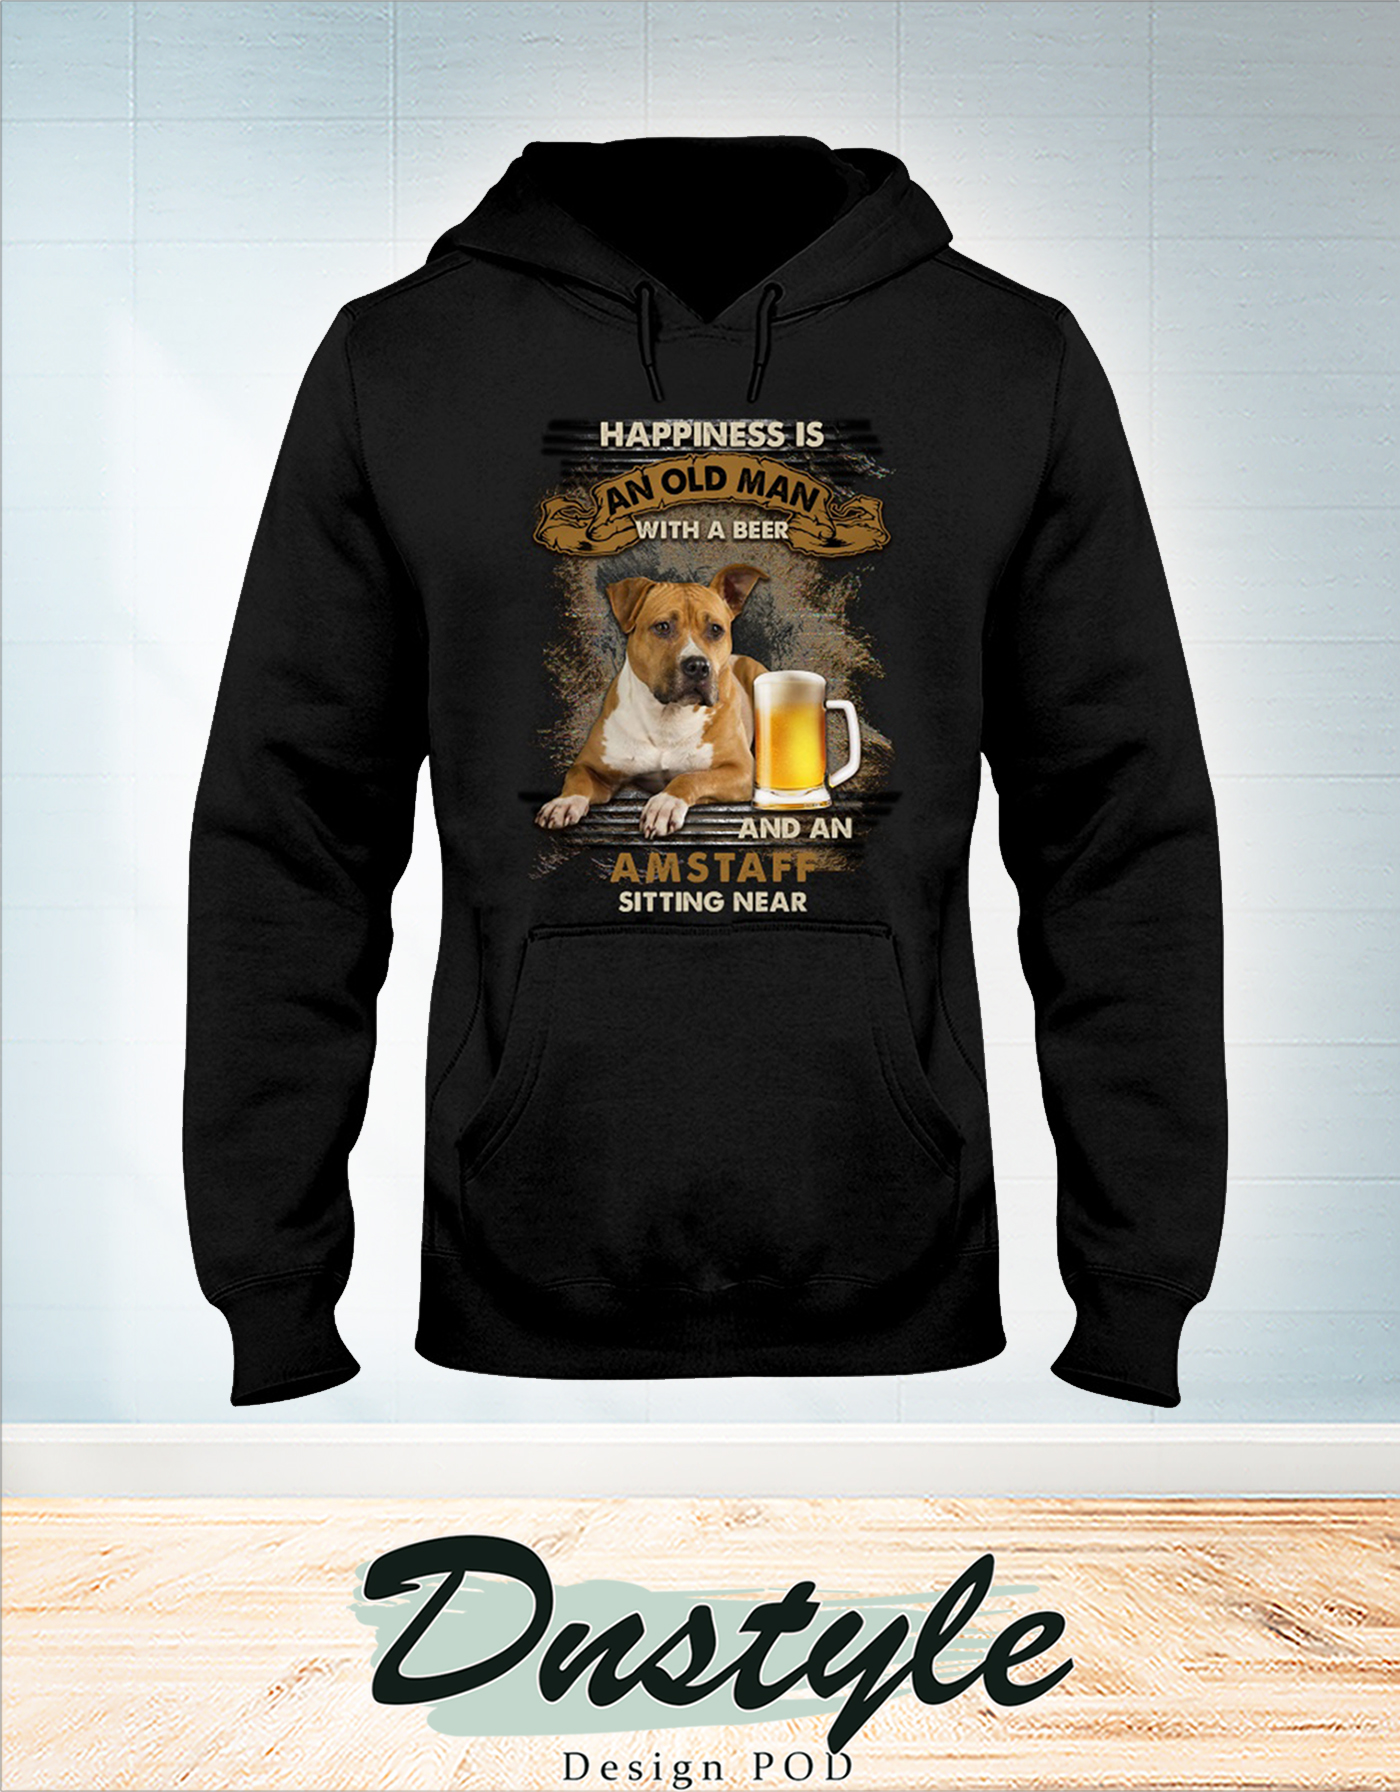 Happiness is an old man with a beer and a Amstaff sitting near hoodie